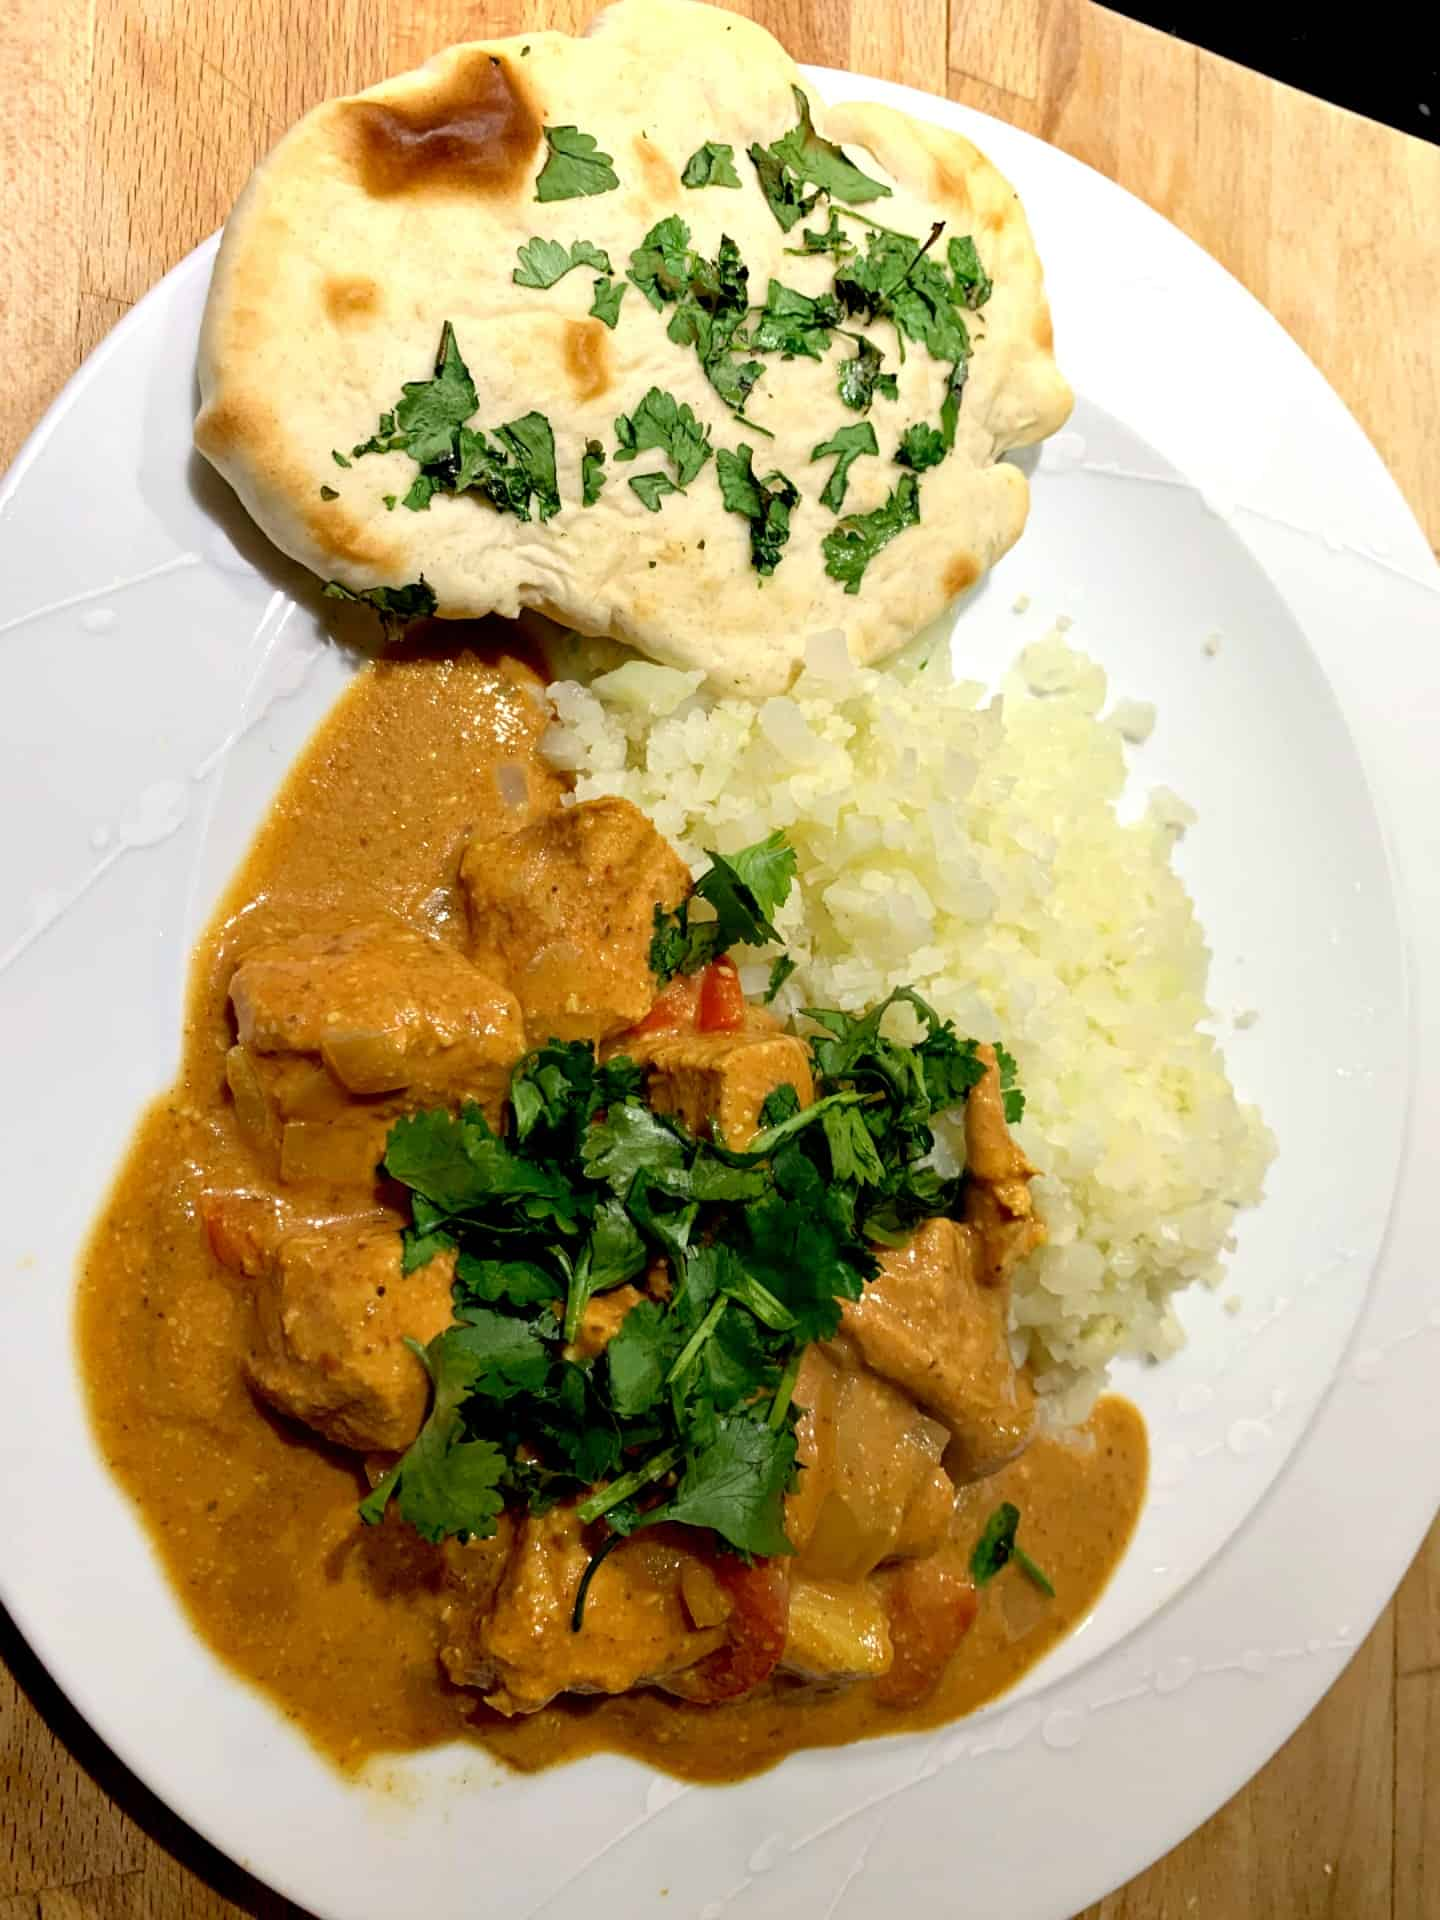 Chicken curry on a plate with rice and naan bread.